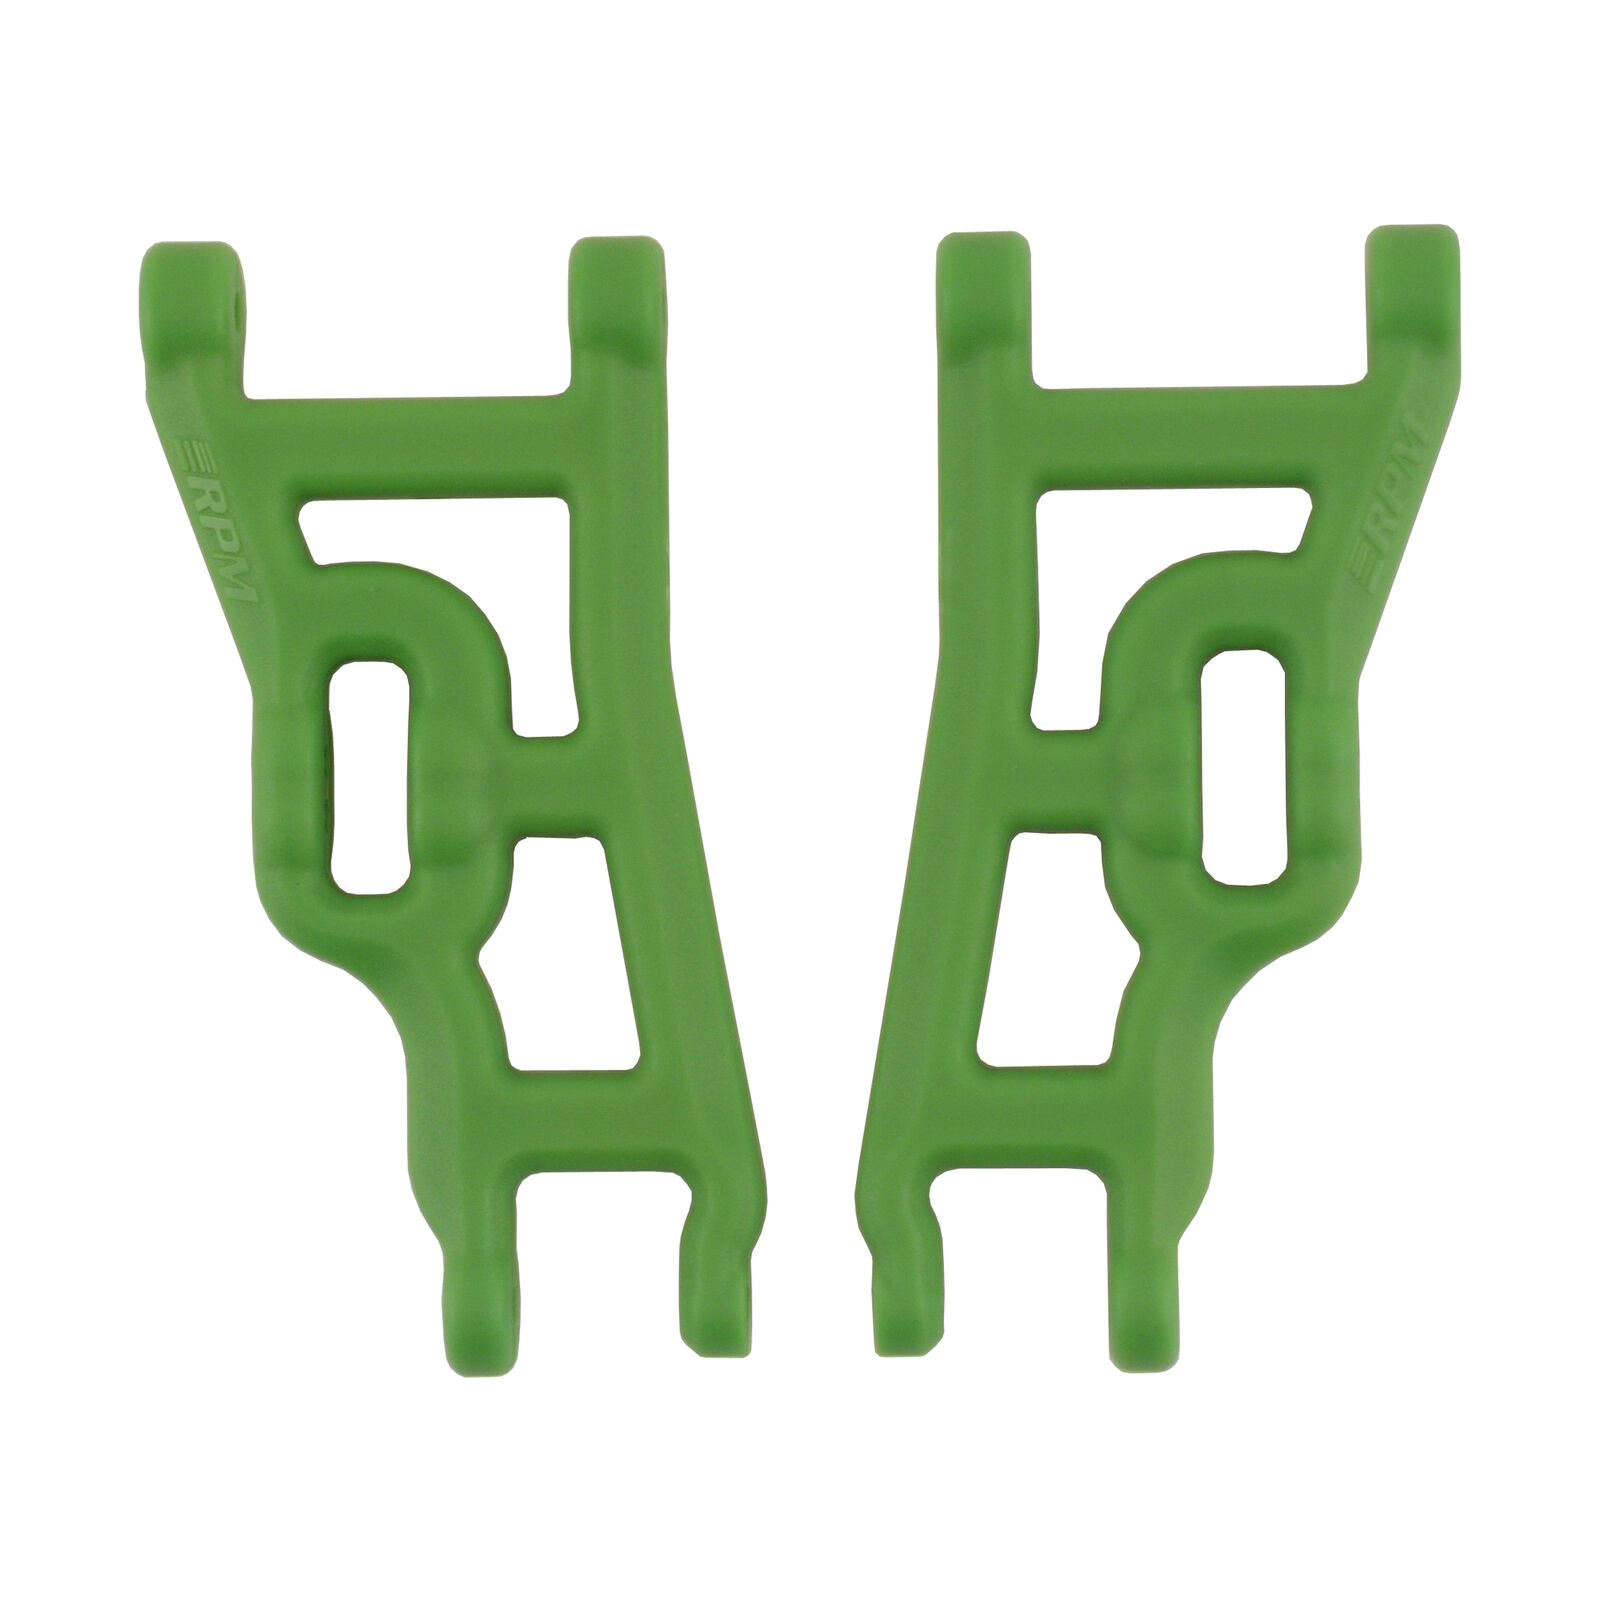 Front A-Arms, Green: Elec Rustler,Stampede,SLH 2WD